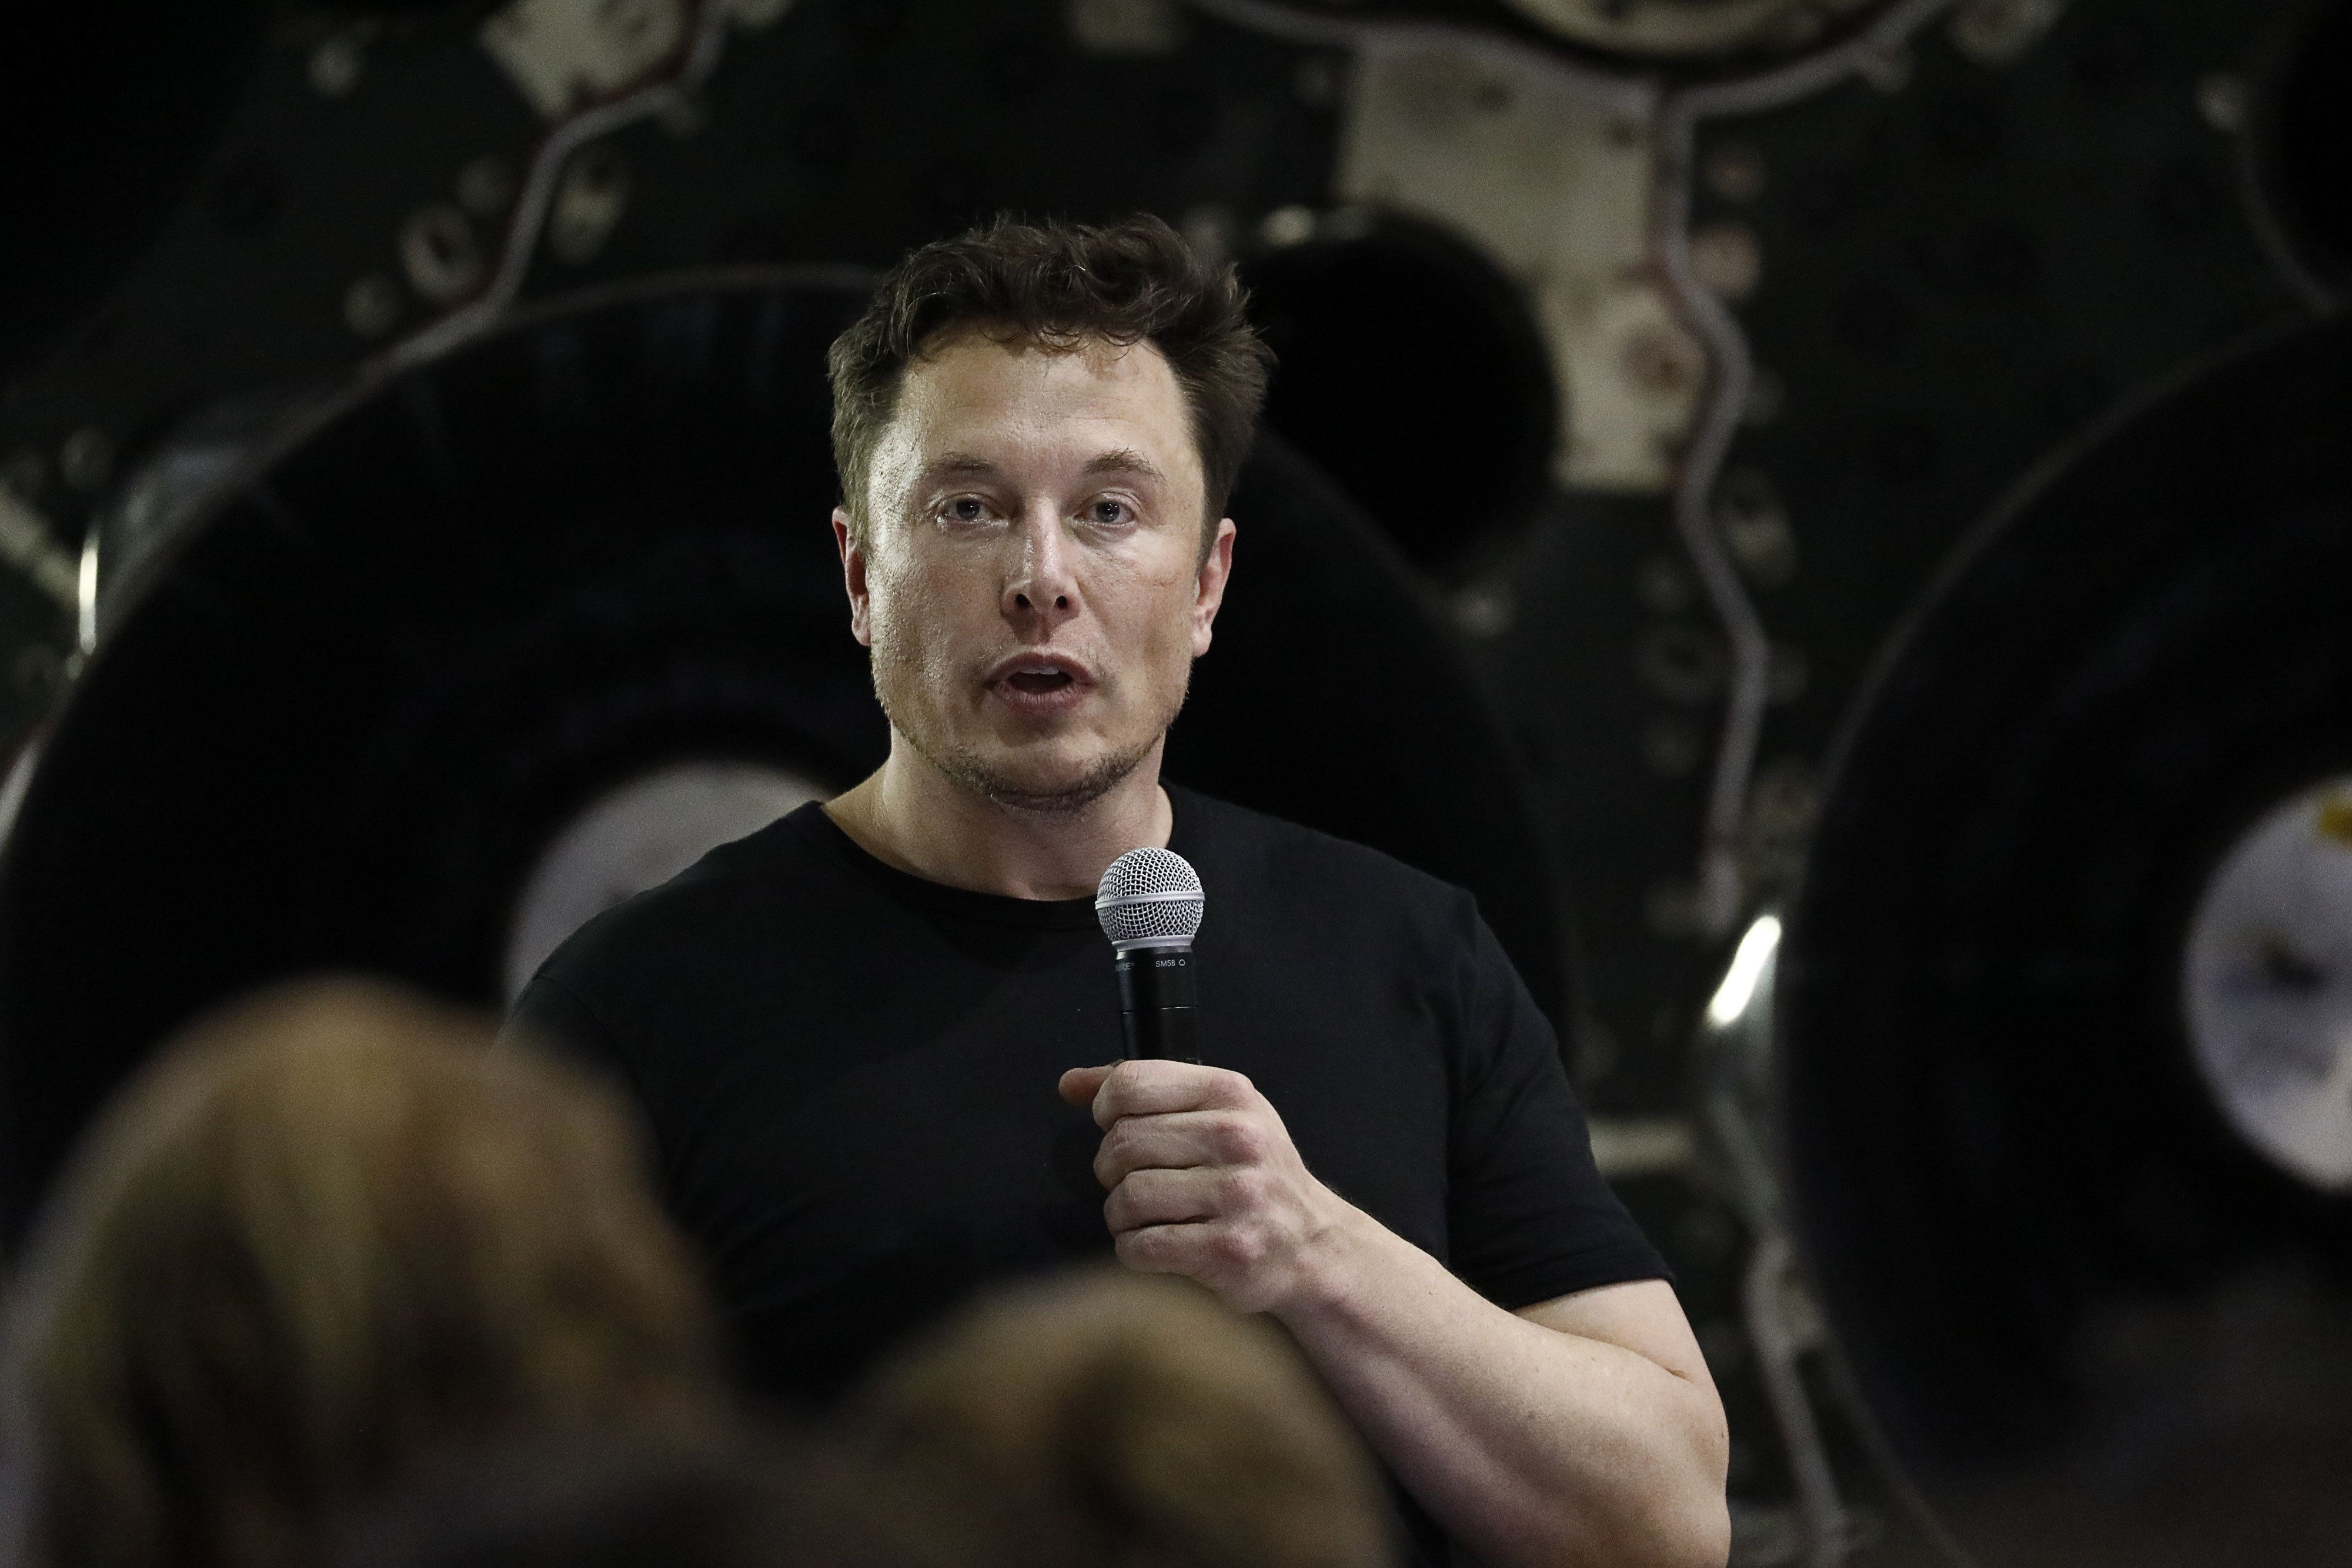 Elon Musk, chief executive officer for Space Exploration Technologies Corp. (SpaceX), speaks during an event at the SpaceX headquarters in Hawthorne, California, U.S., on Monday, Sept. 17, 2018. Musk just revealed the identity of the precious cargo hitching a ride around the moon with his rocket company: Japanese billionaire Yusaku Maezawa. Photographer: Patrick T. Fallon/Bloomberg via Getty Images